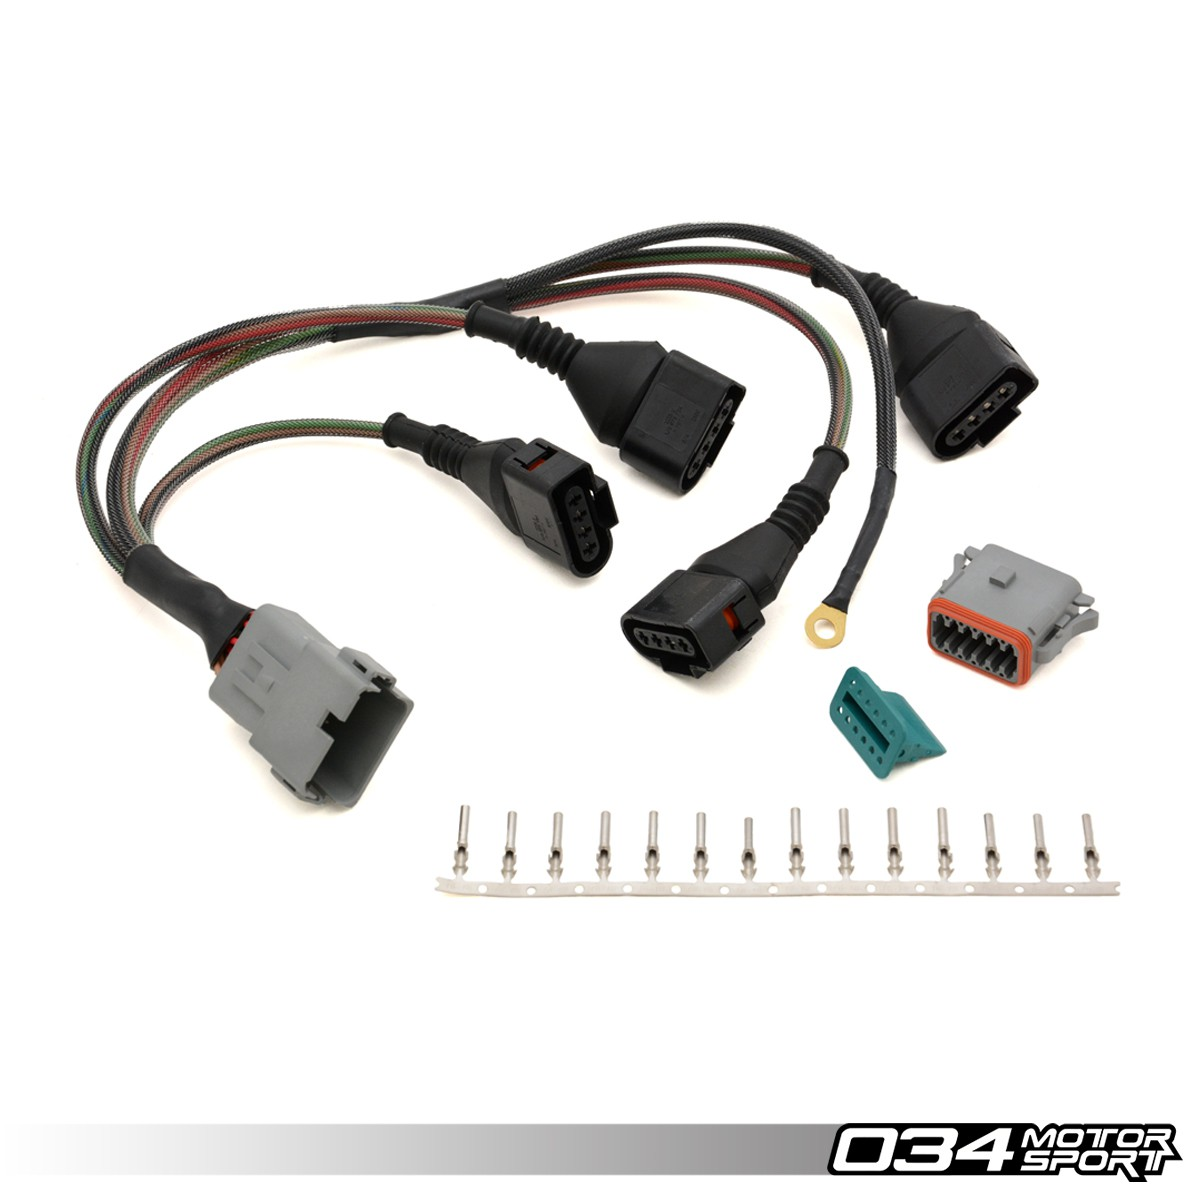 repair update harness audi volkswagen 18t with 4 wire coils 034motorsport 034 701 0004 2 repair update harness, audi volkswagen 1 8t with 4 wire coils how to repair wire harness connector at readyjetset.co